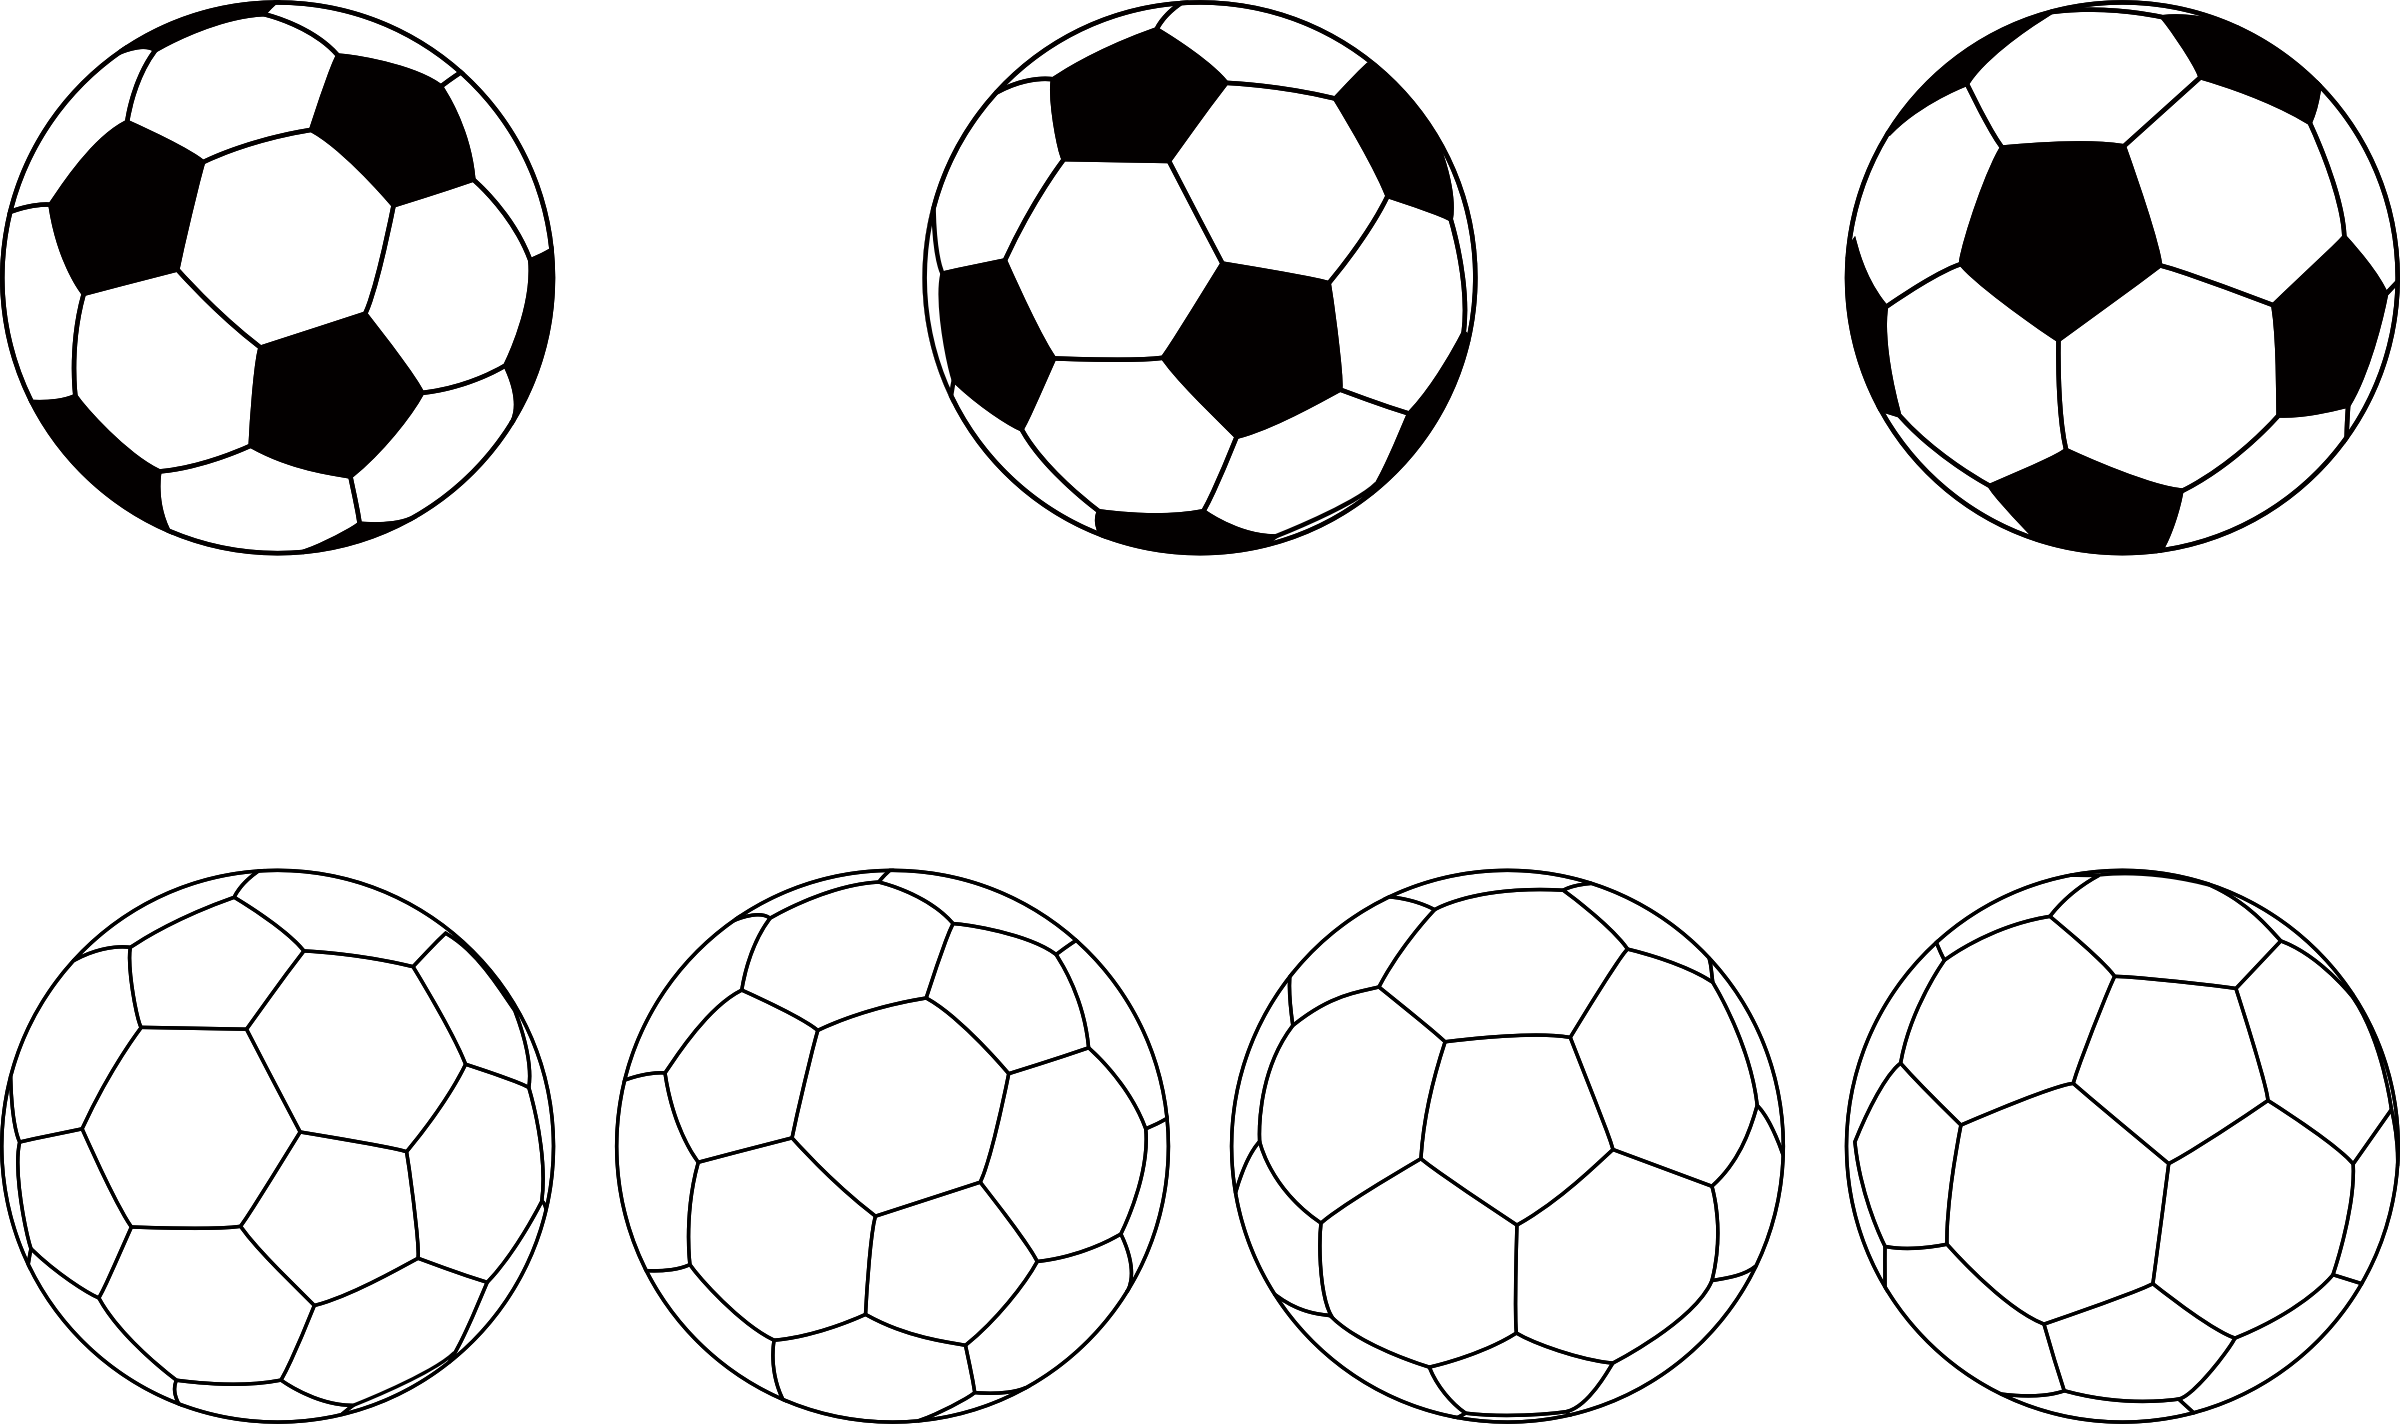 Soccer Balls by oksmith